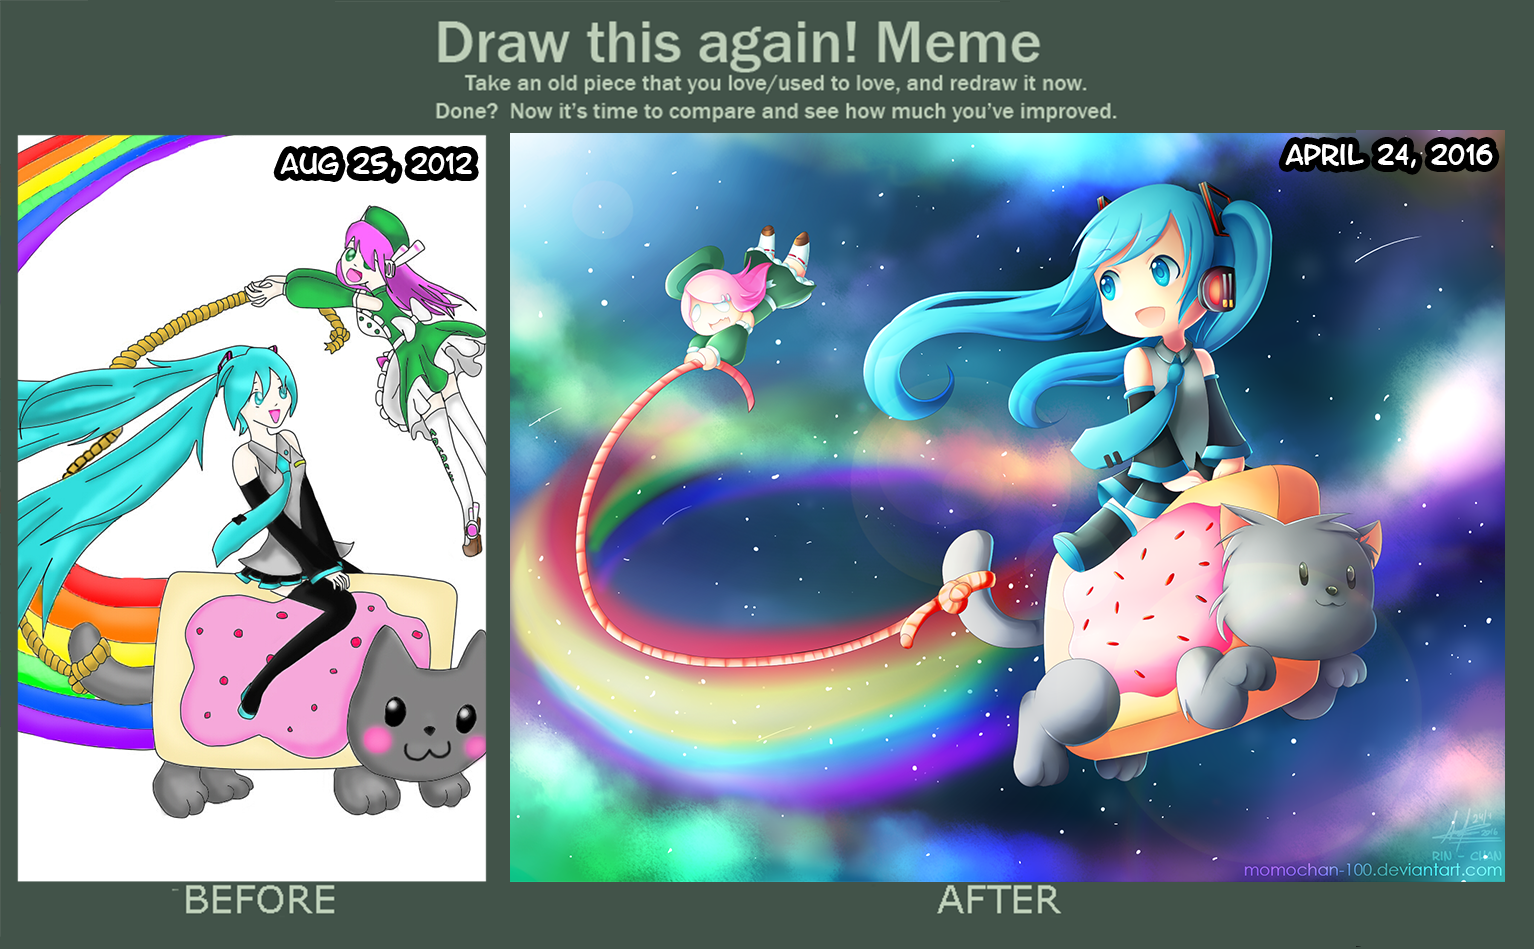 draw_this_again___riding_on_nyan_cat_by_momochan_100 da08kkw draw this again riding on nyan cat by momochan 100 on deviantart